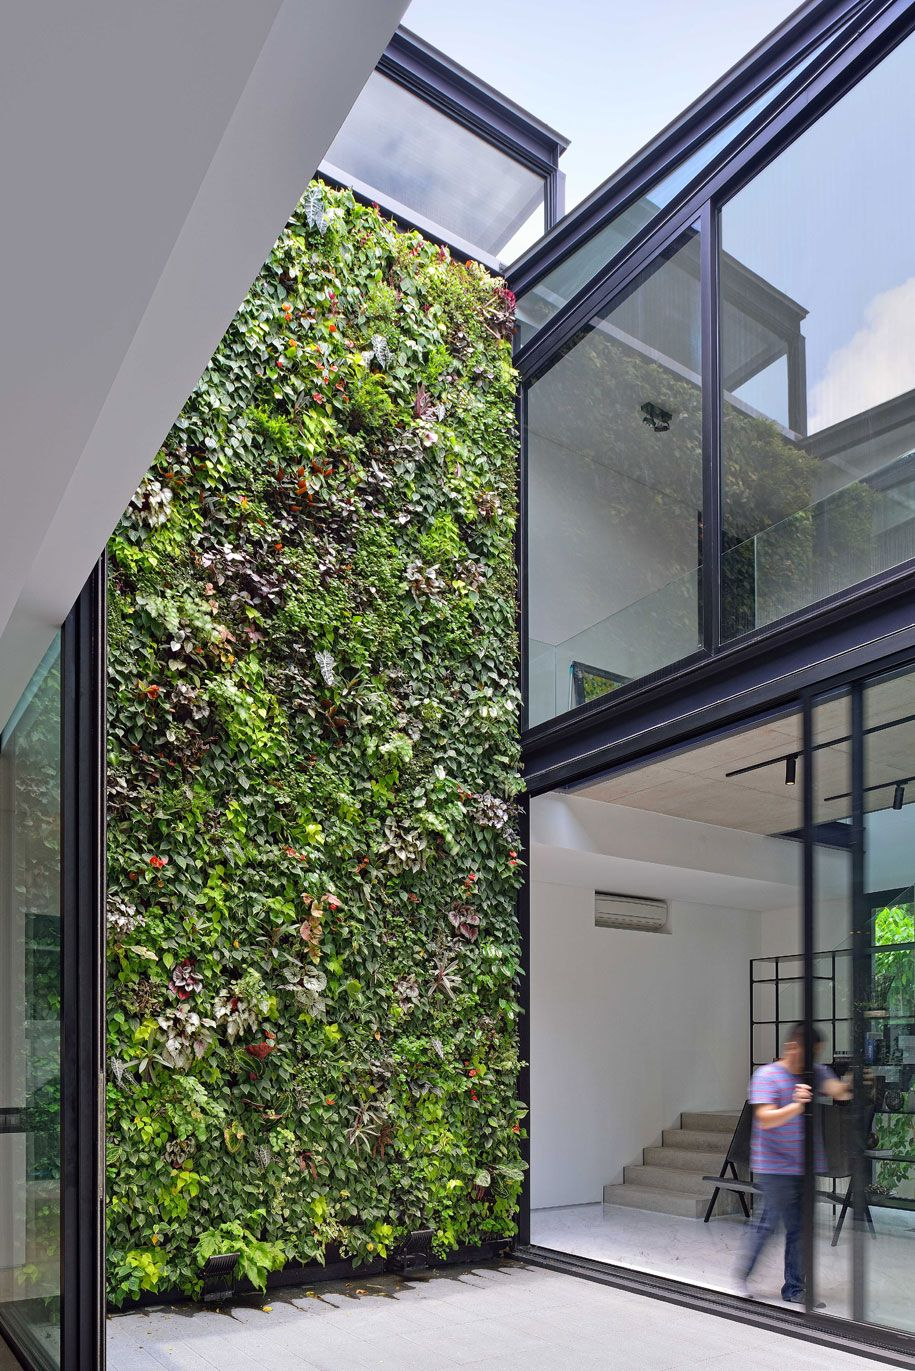 Modern garden house  Greenery wall  I really like this concept but I donut really know